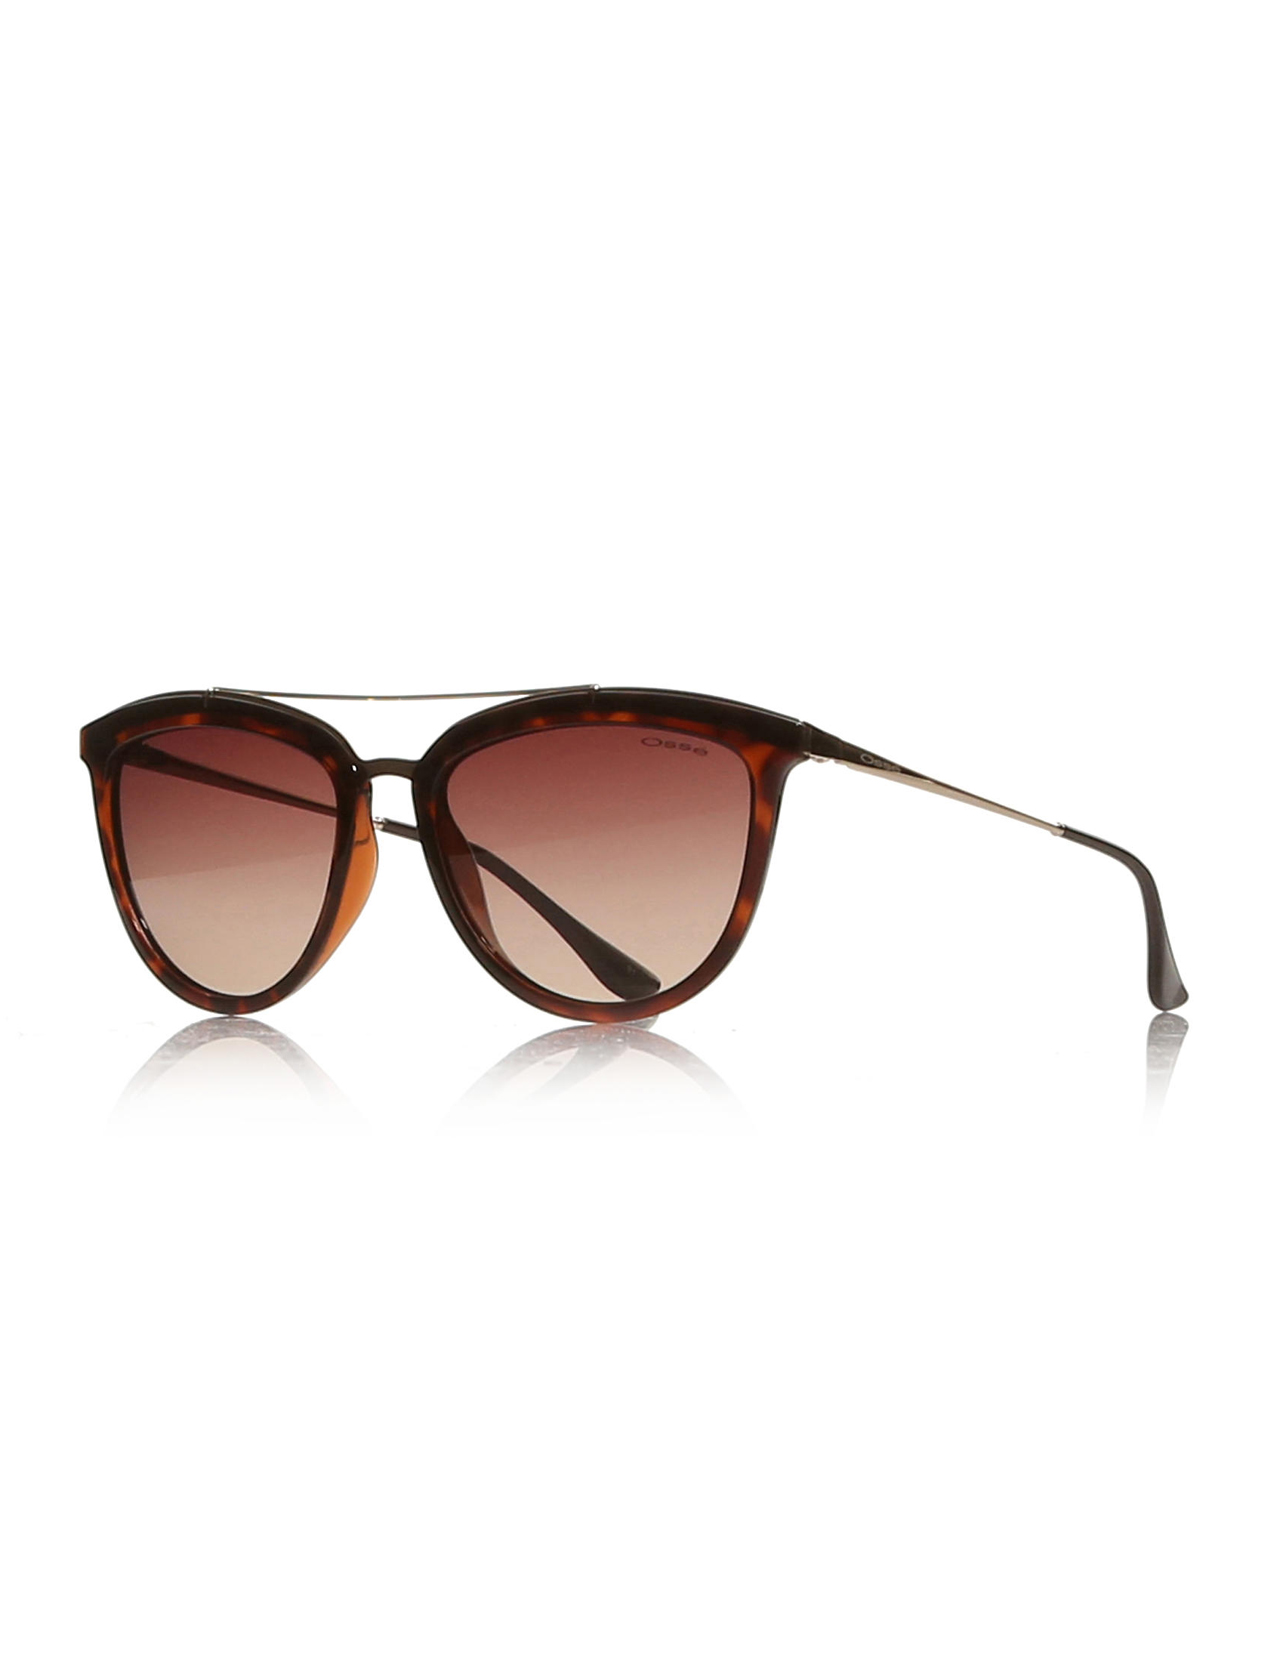 Unisex sunglasses os 2268 02 bone Brown unspecified 54 -- osse